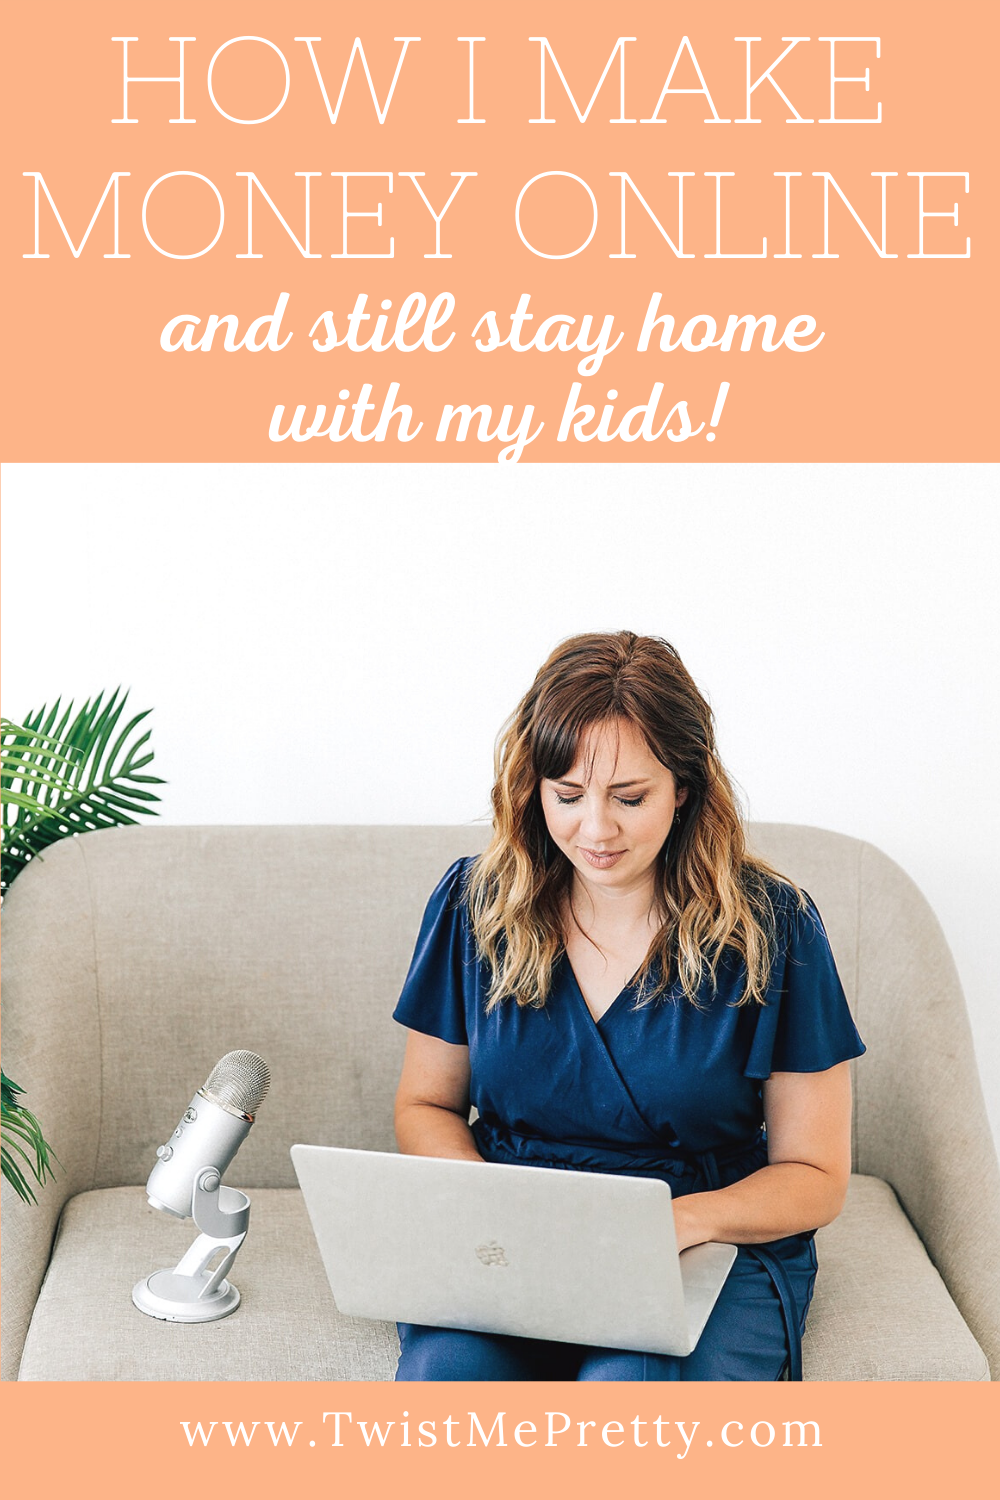 How I make money online and still stay home with my kids. www.TwistMePretty.com